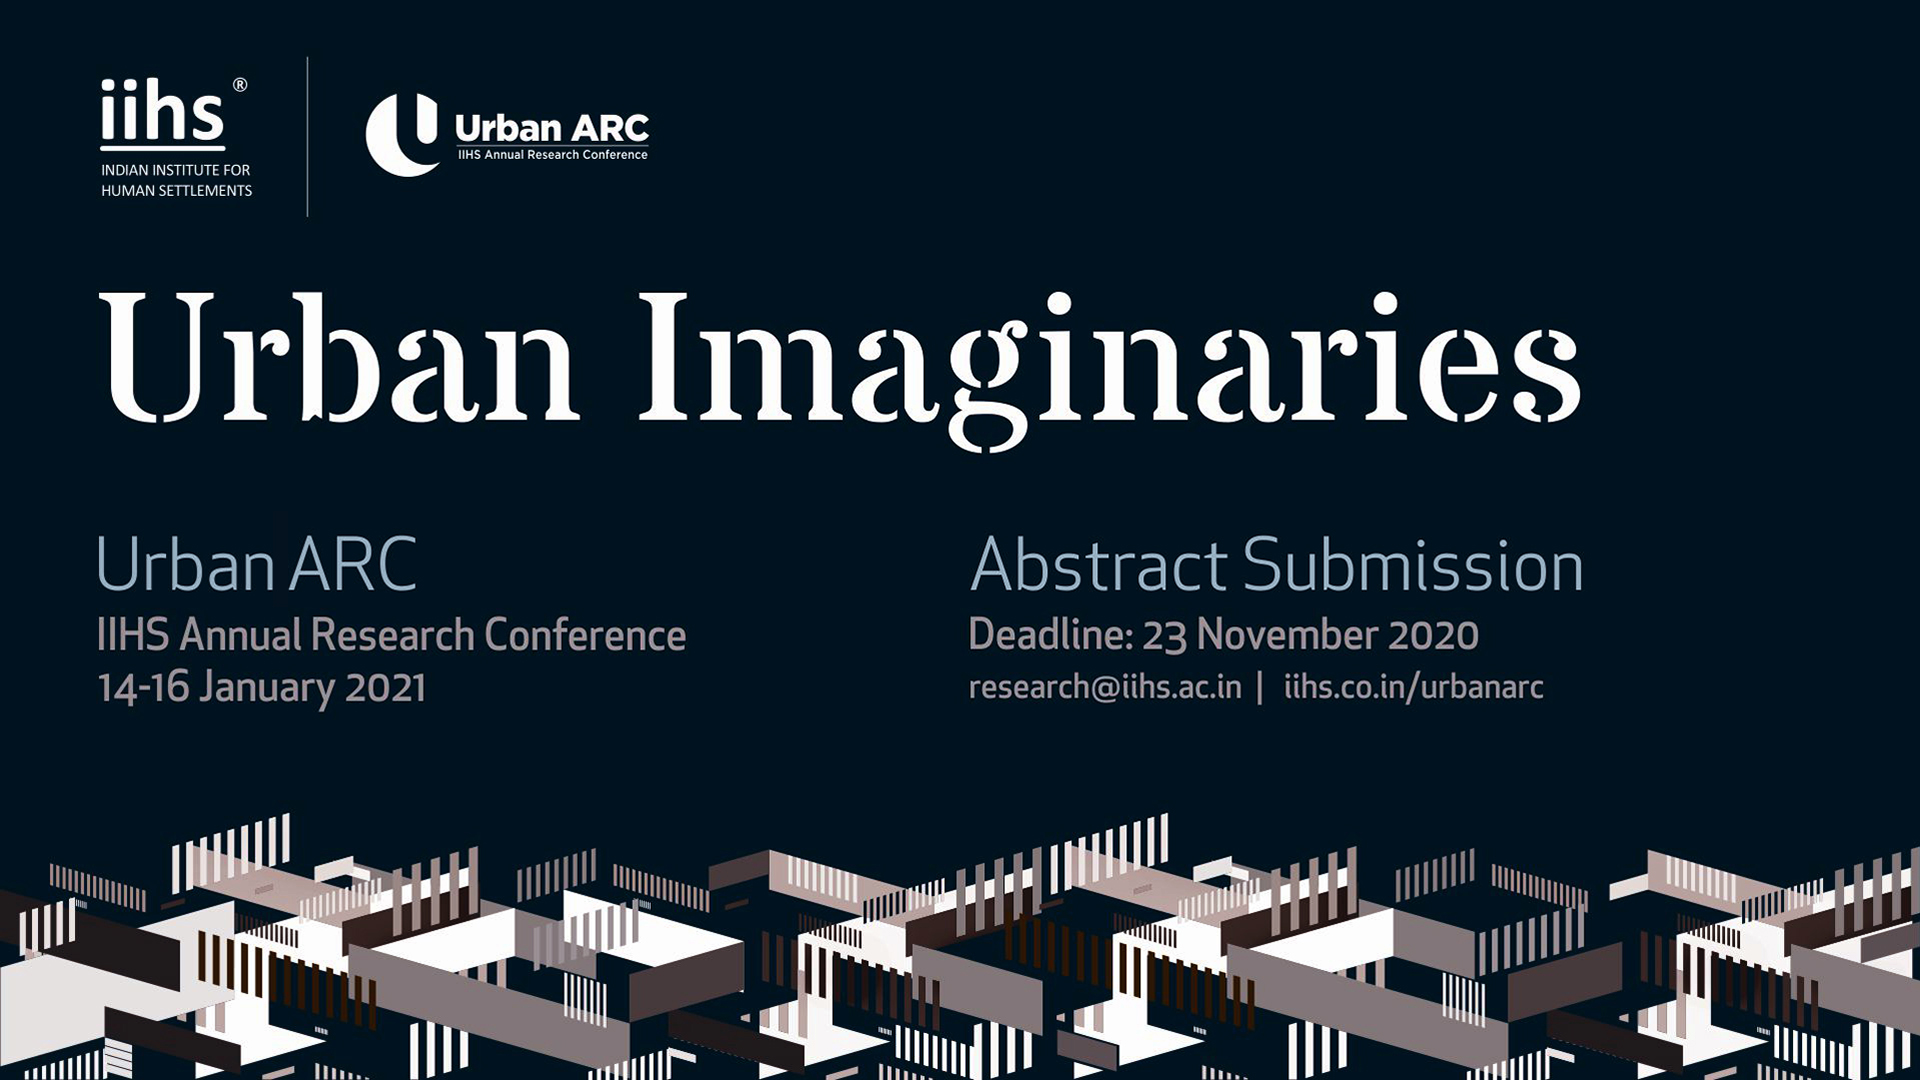 IIHS Urban Arc 2021 conference banner